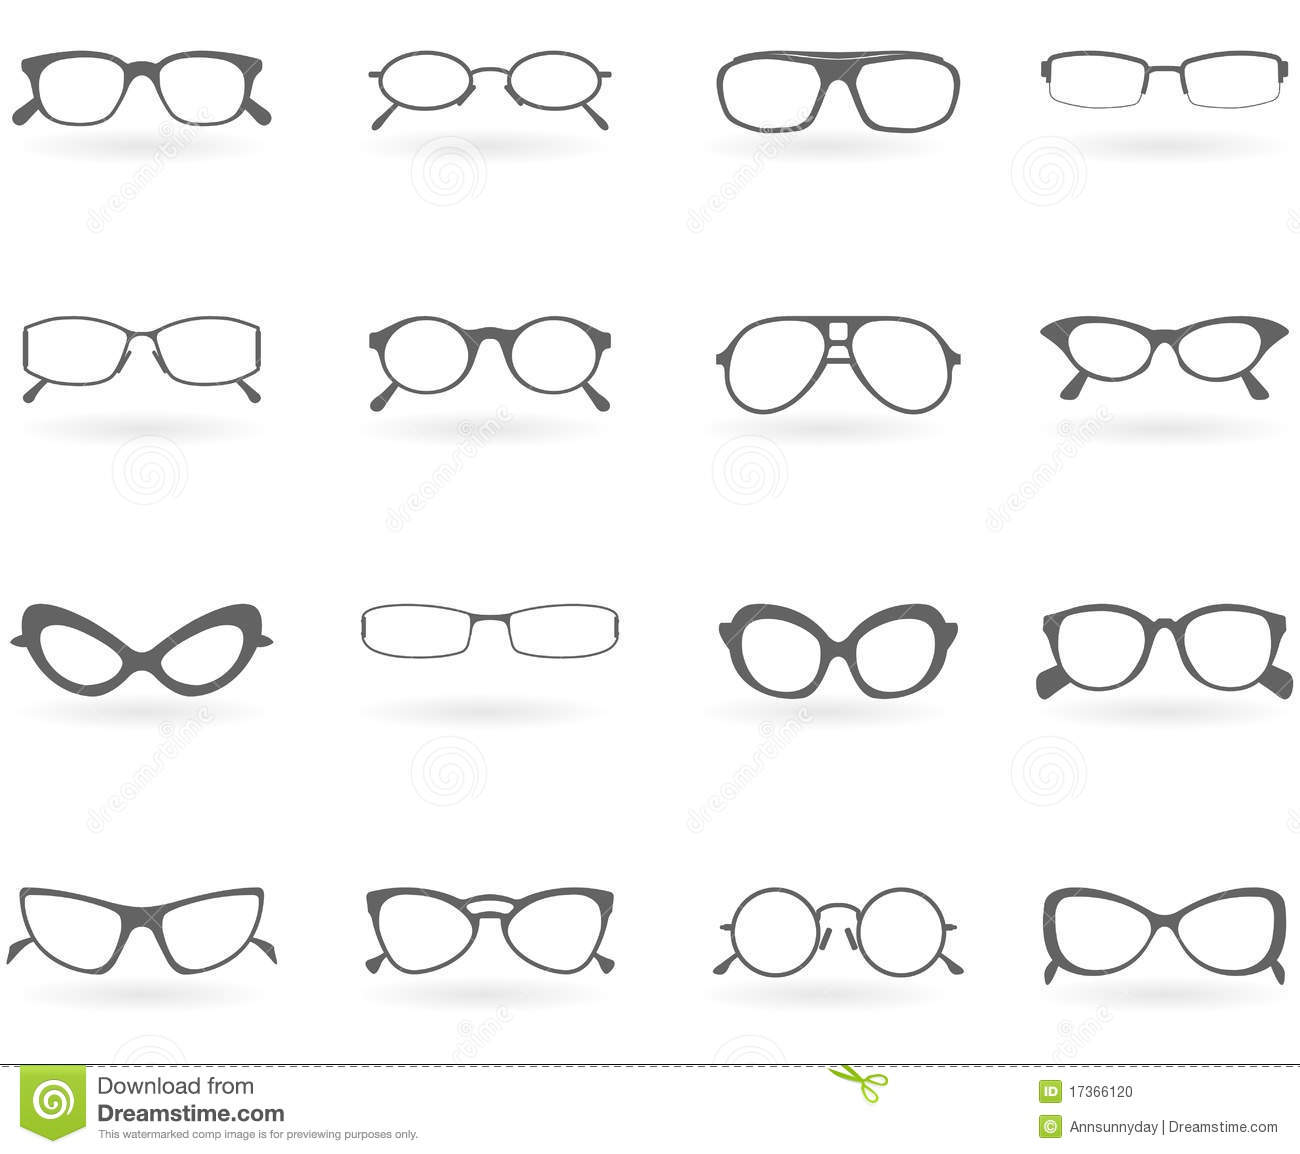 Glasses In Different Styles Stock Vector - Illustration of ...